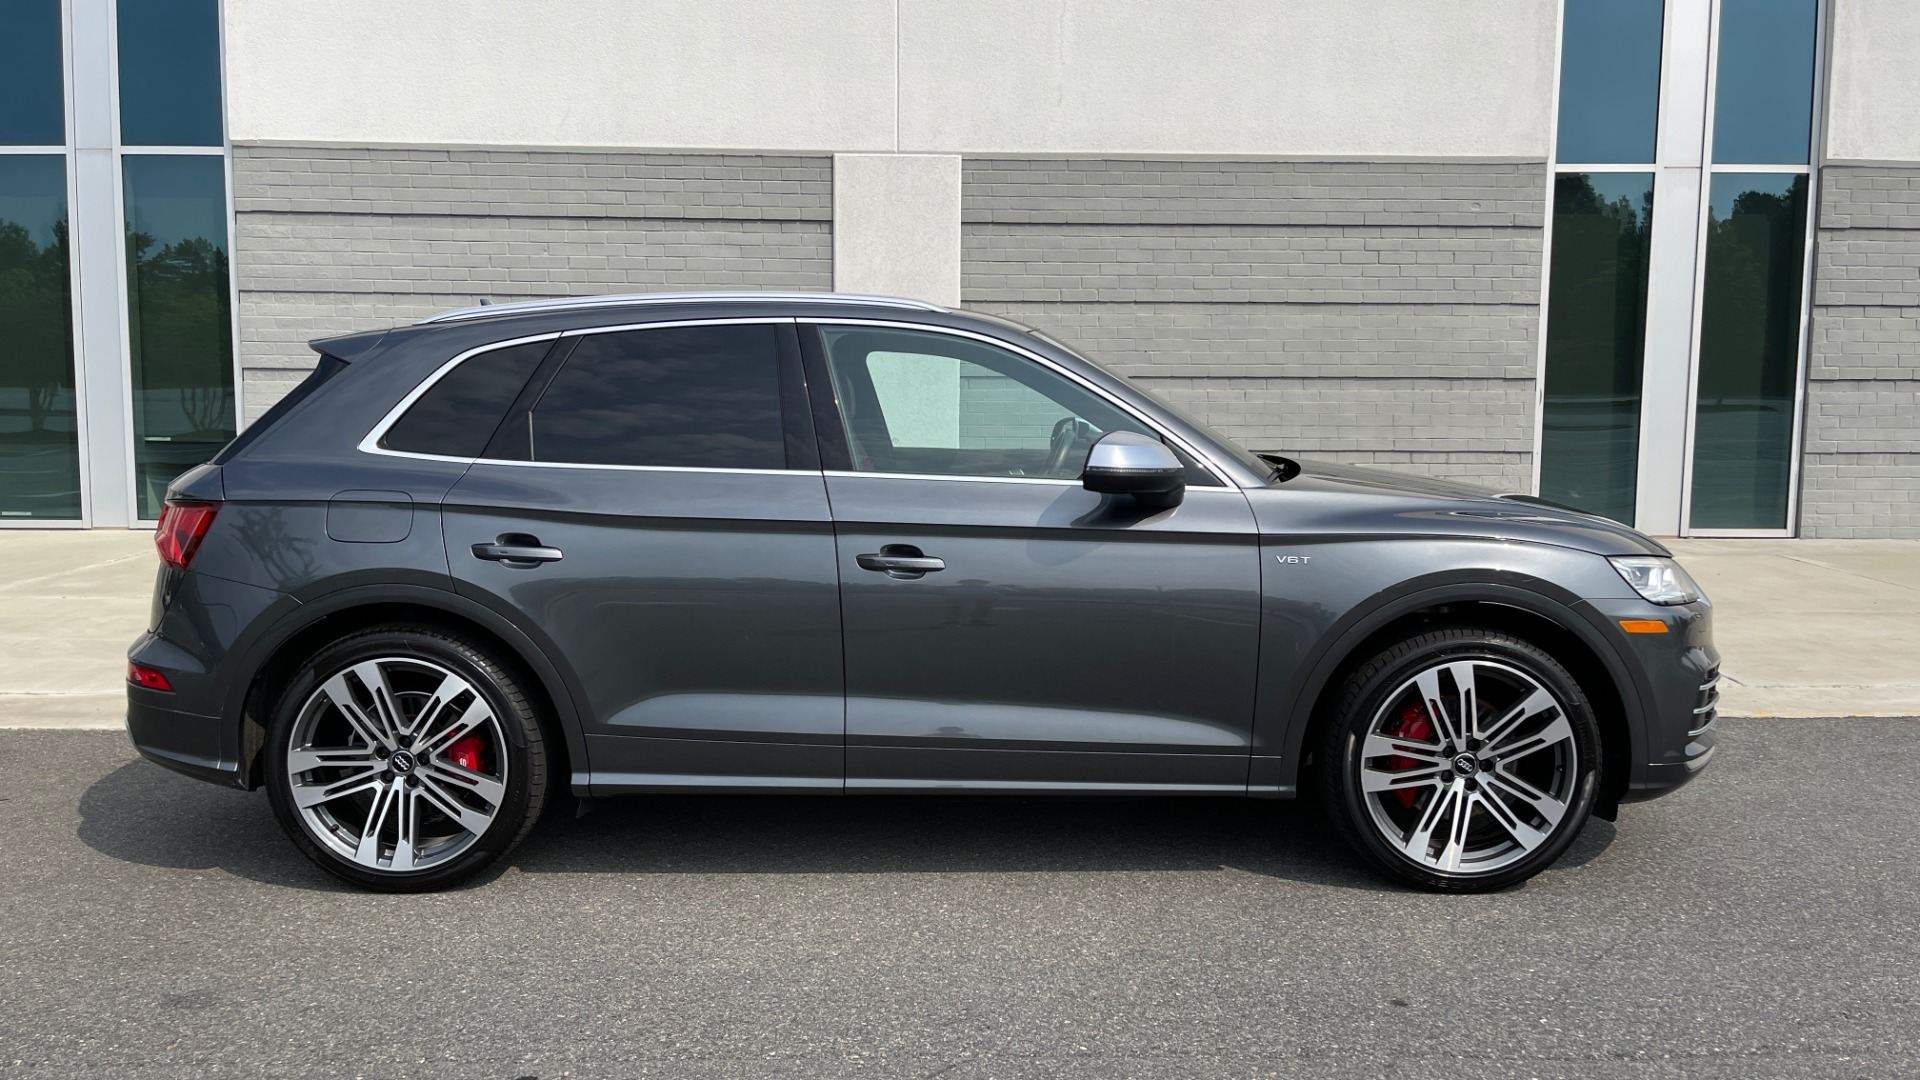 Used 2018 Audi SQ5 PREMIUM PLUS / S-SPORT / NAV / B&O SND / SUNROOF / REARVIEW for sale $43,995 at Formula Imports in Charlotte NC 28227 8